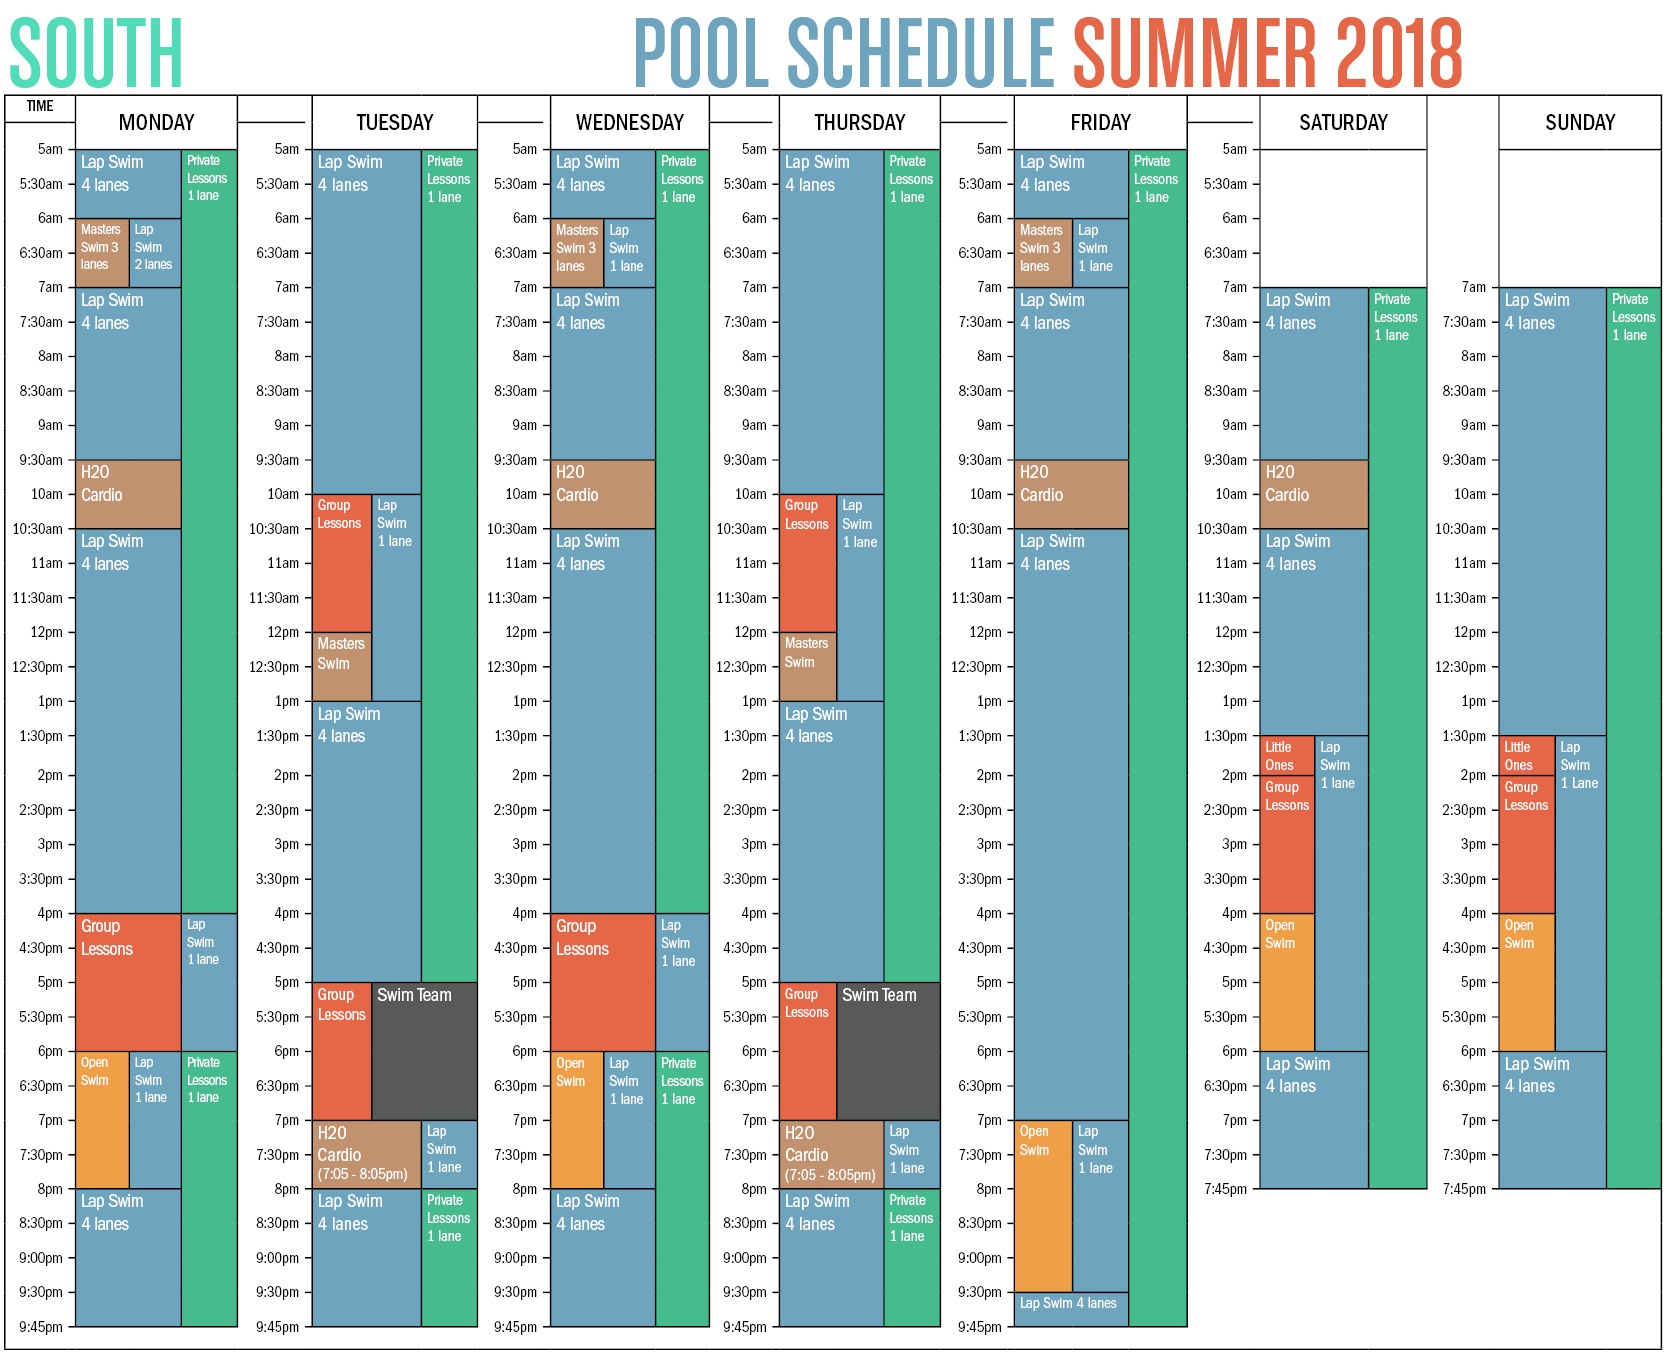 South Summer Pool Schedule